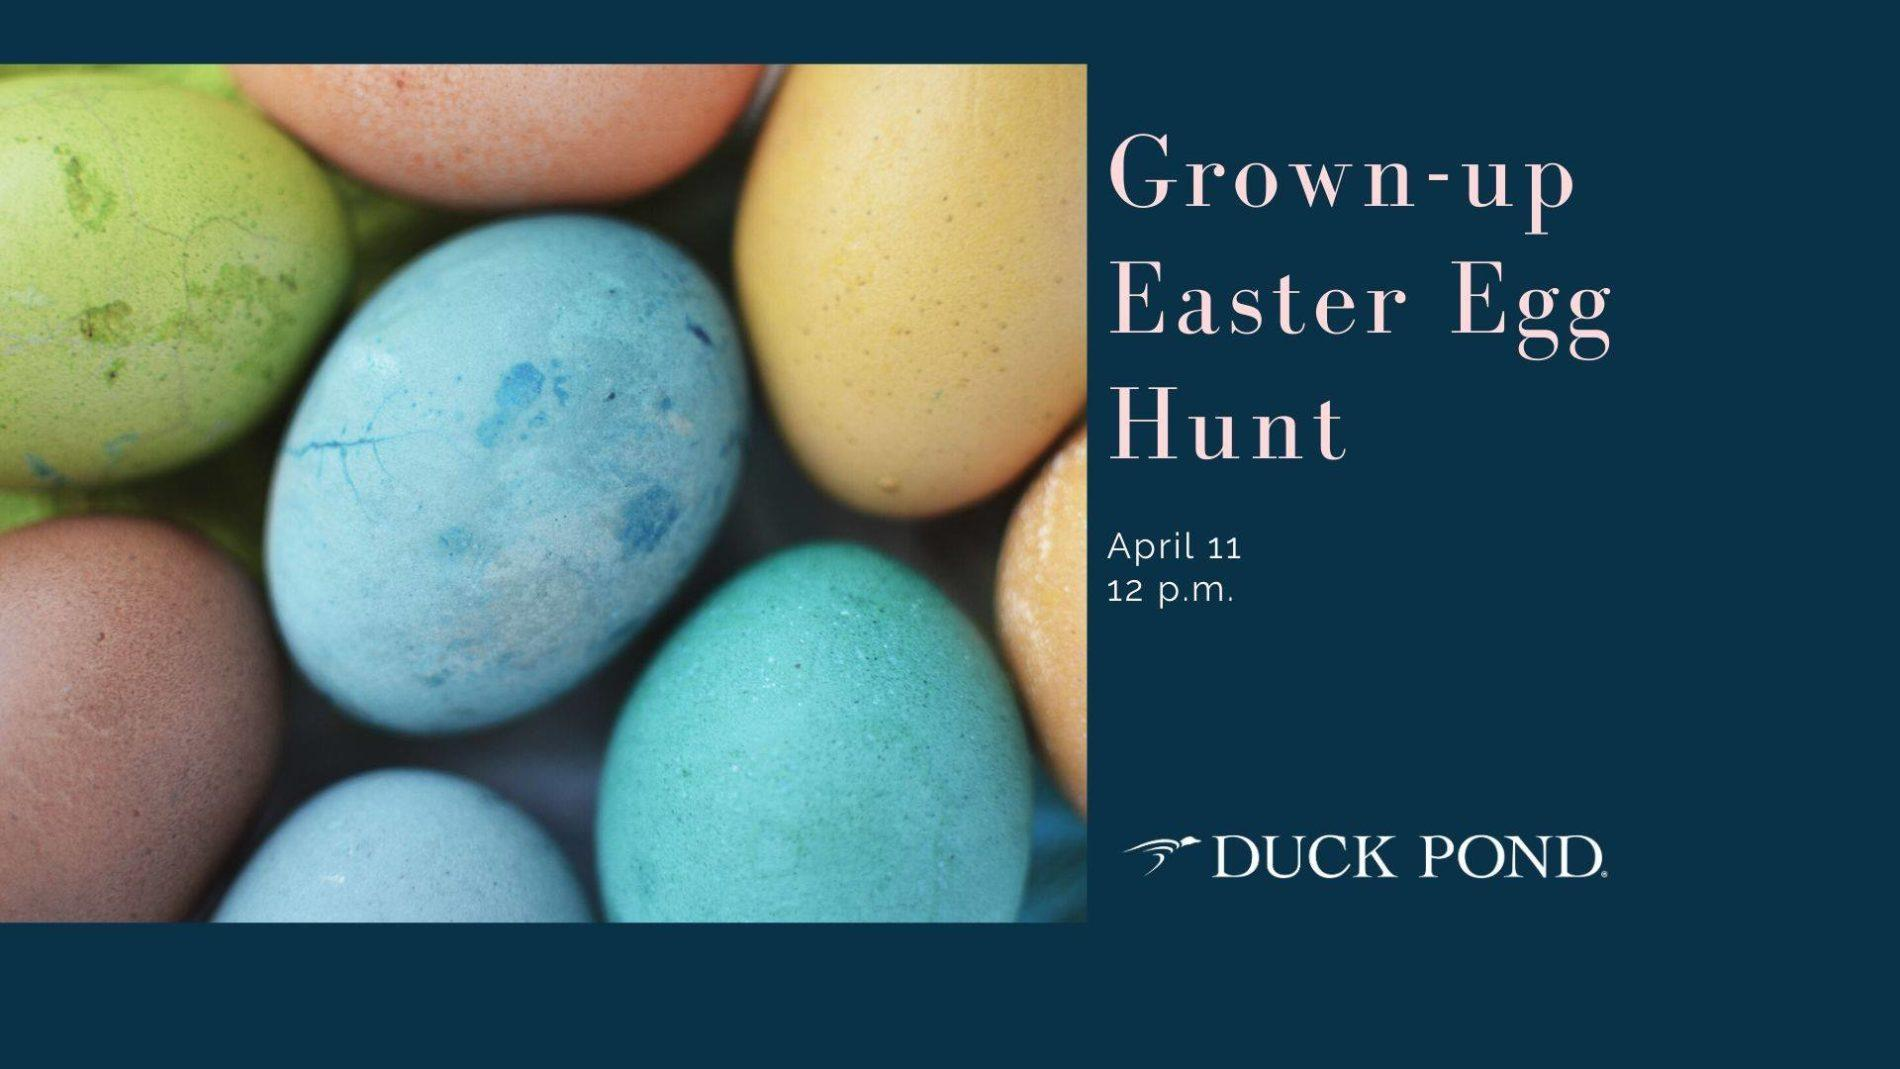 EasterEggHuntImage - Grown-up Easter Egg Hunt